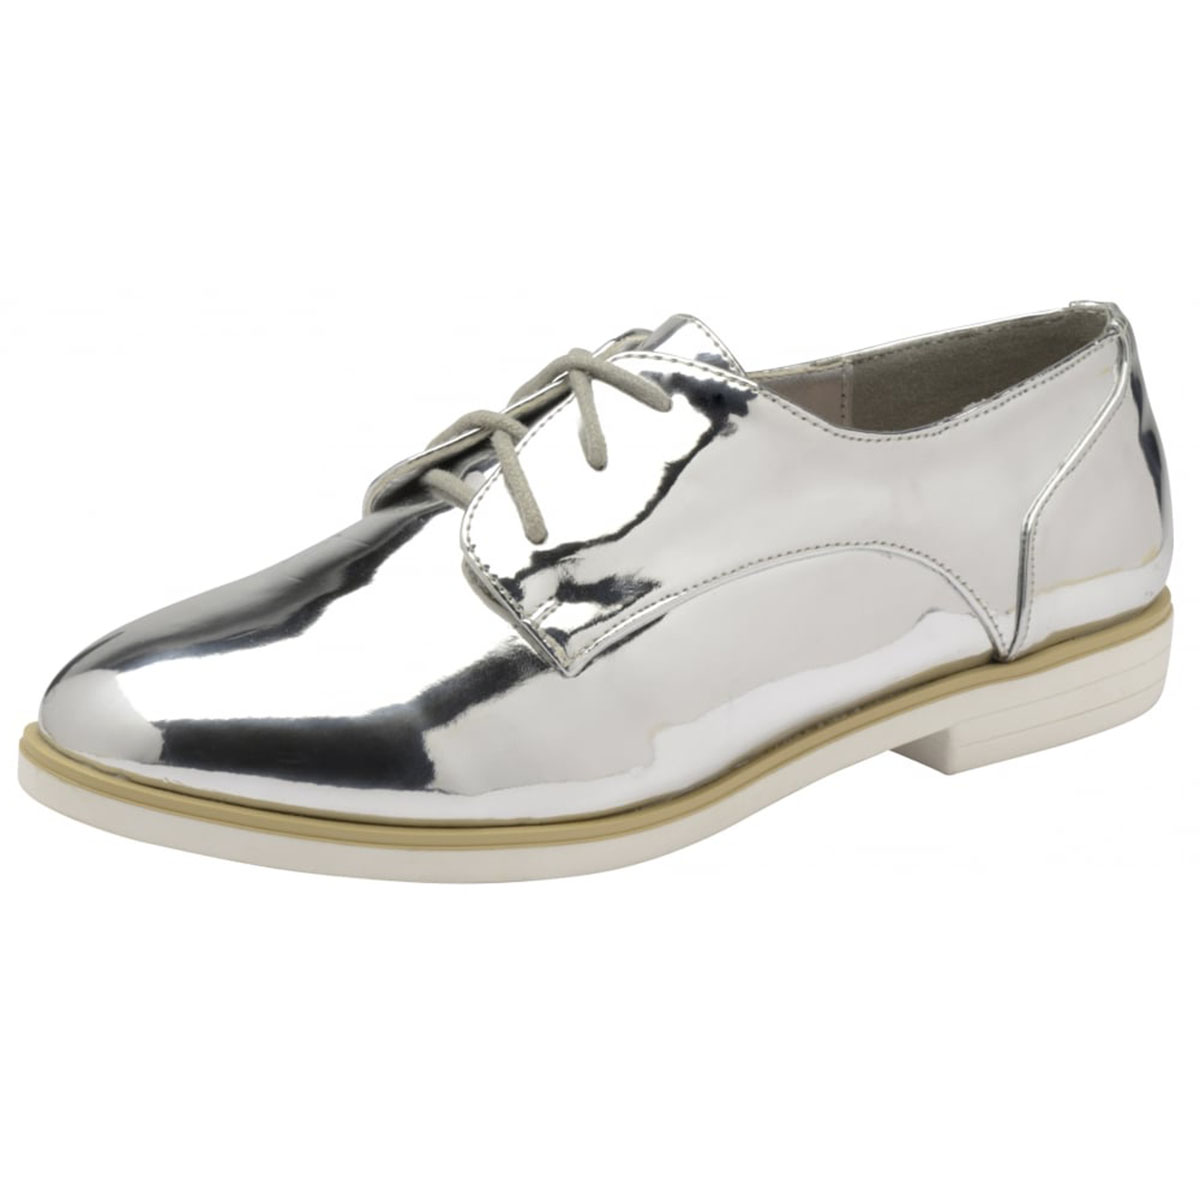 Dolcis Dolcis Kia Lace-Up Silver classic sale online online cheap cheap sale get authentic from china cheap price fkLAFRSjee